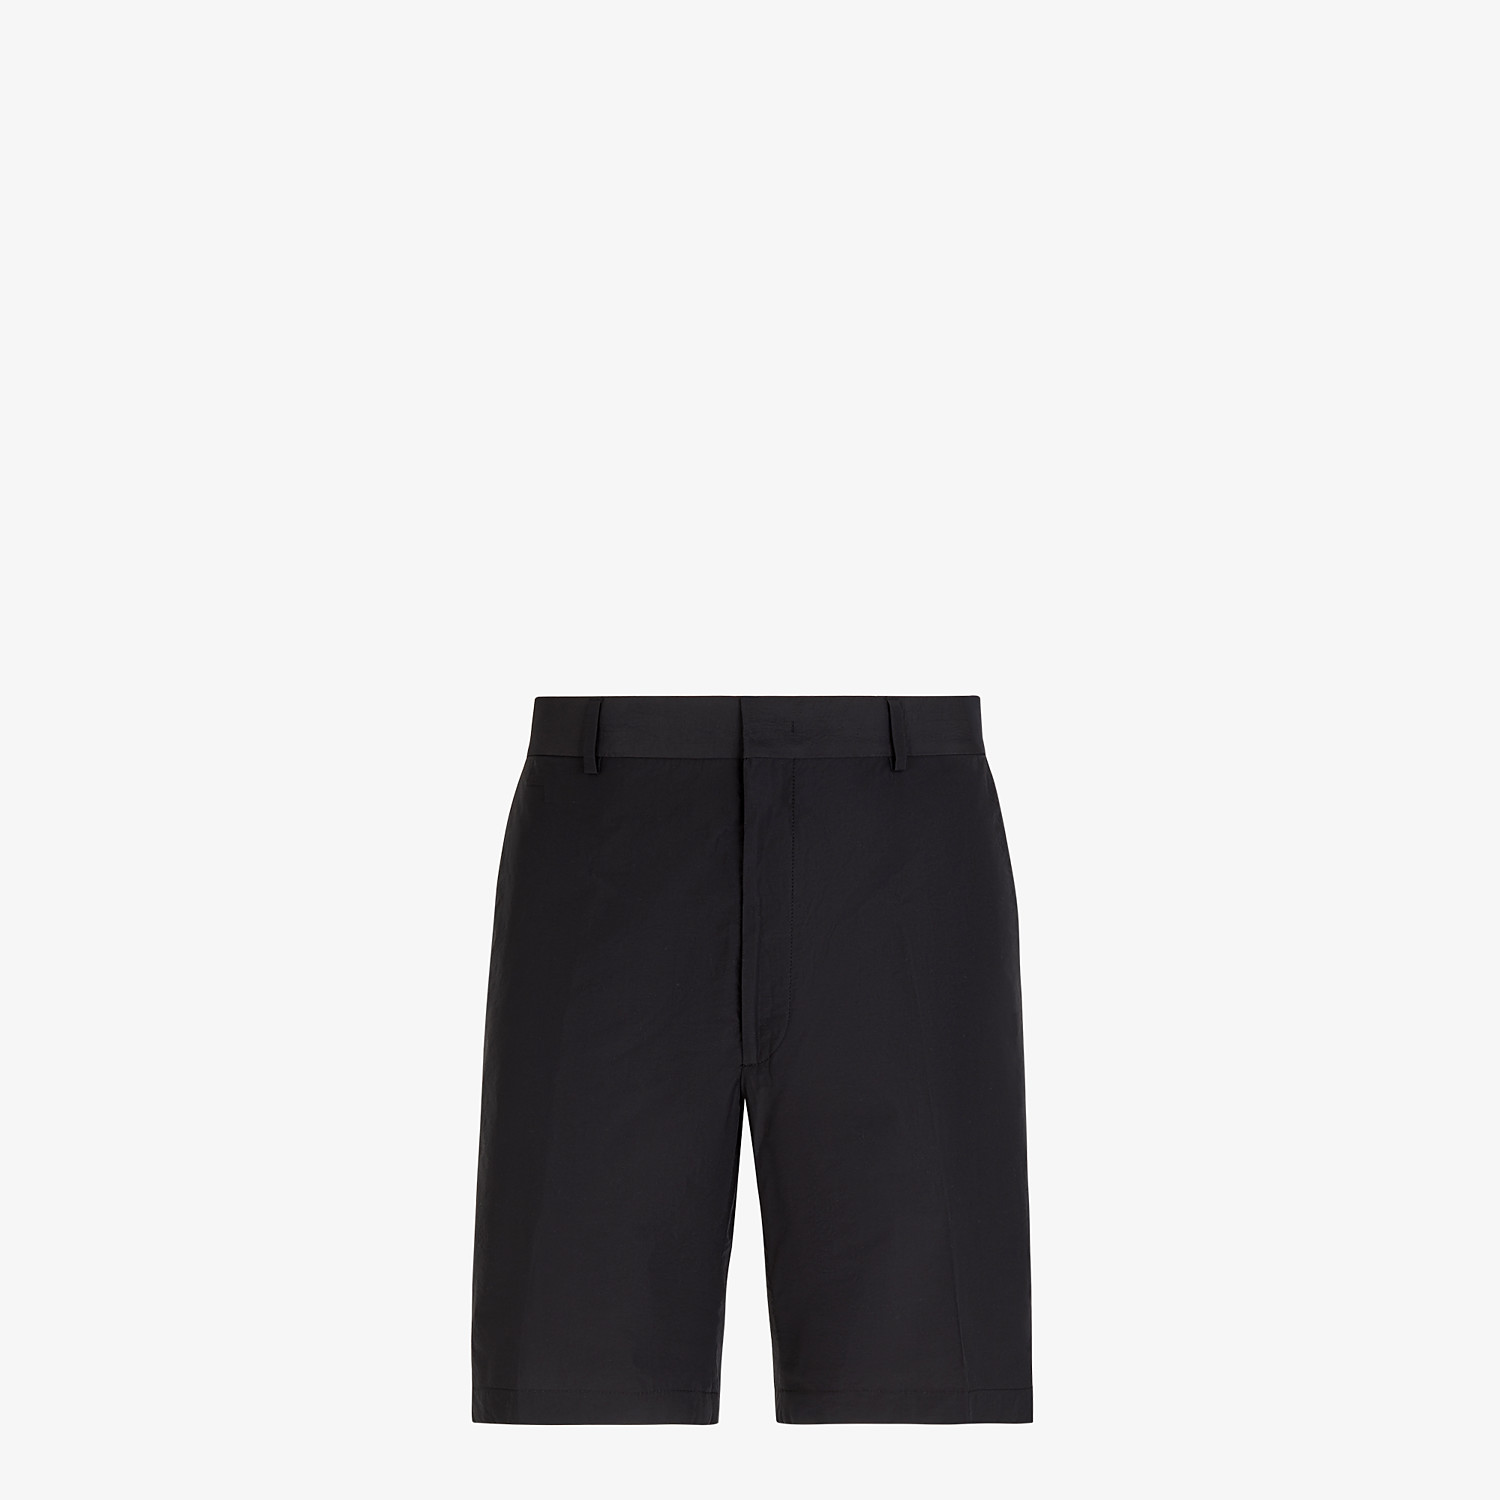 FENDI BERMUDAS - Black nylon and cotton pants - view 1 detail